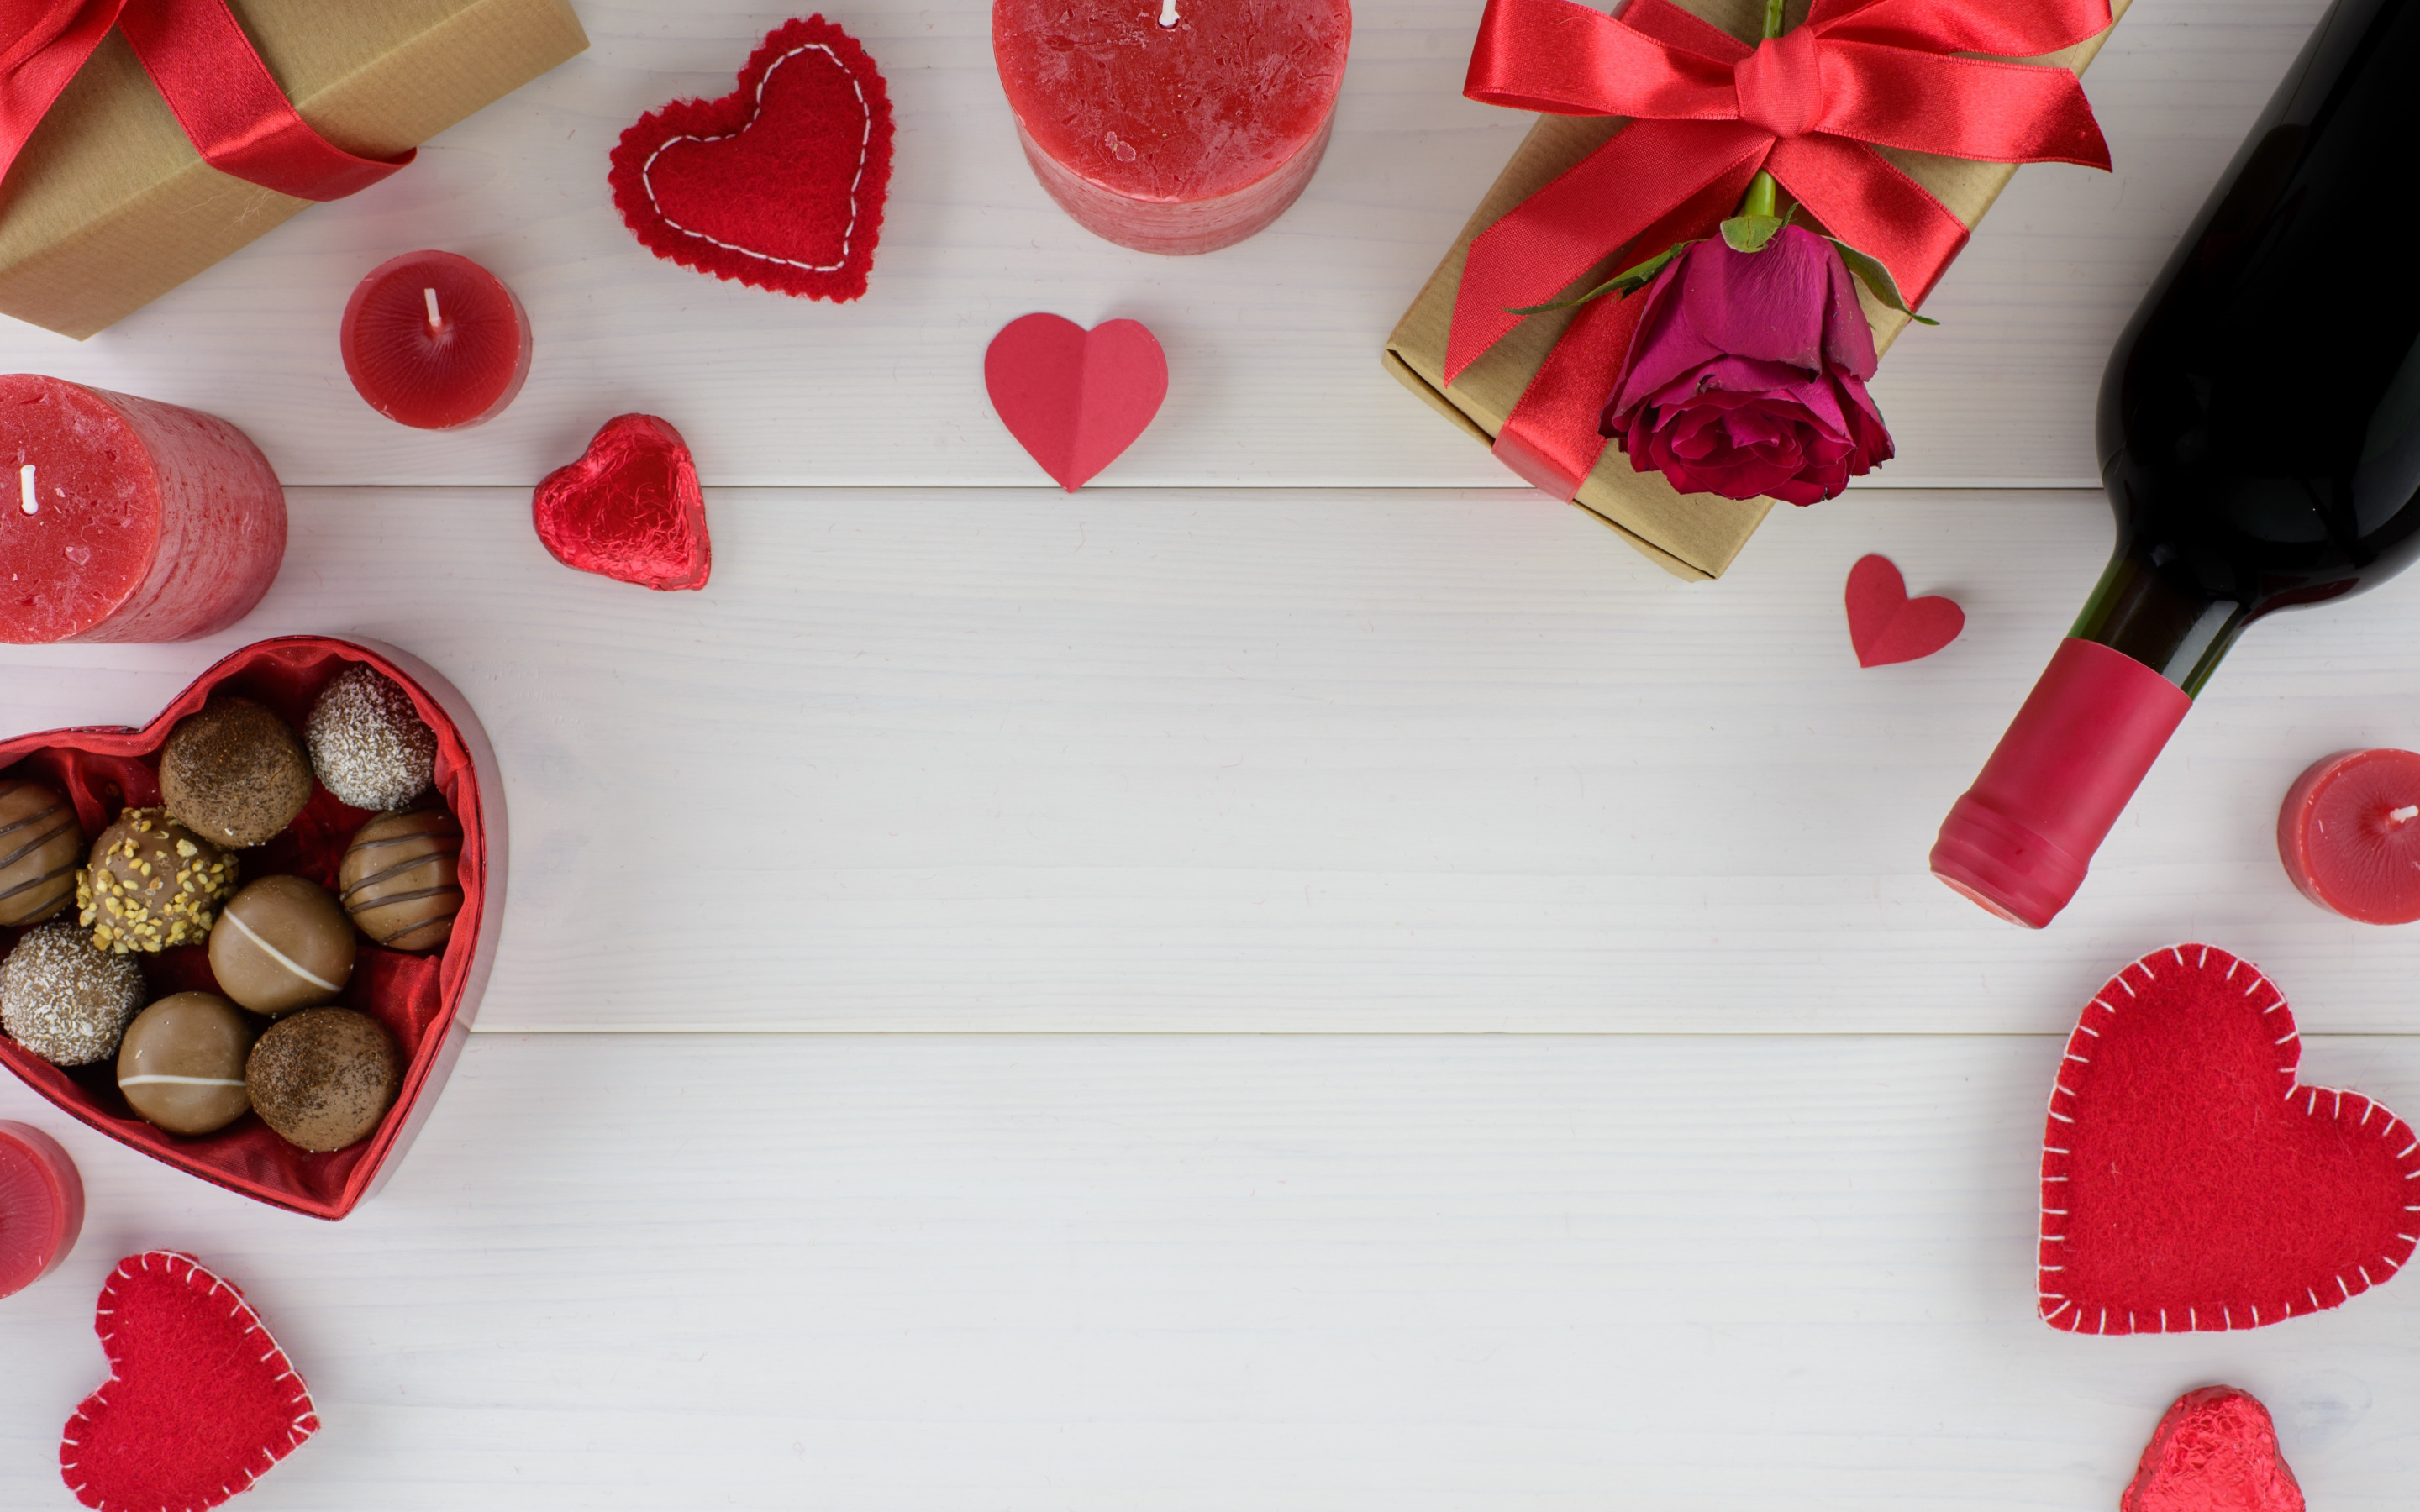 Online dating valentines day gifts